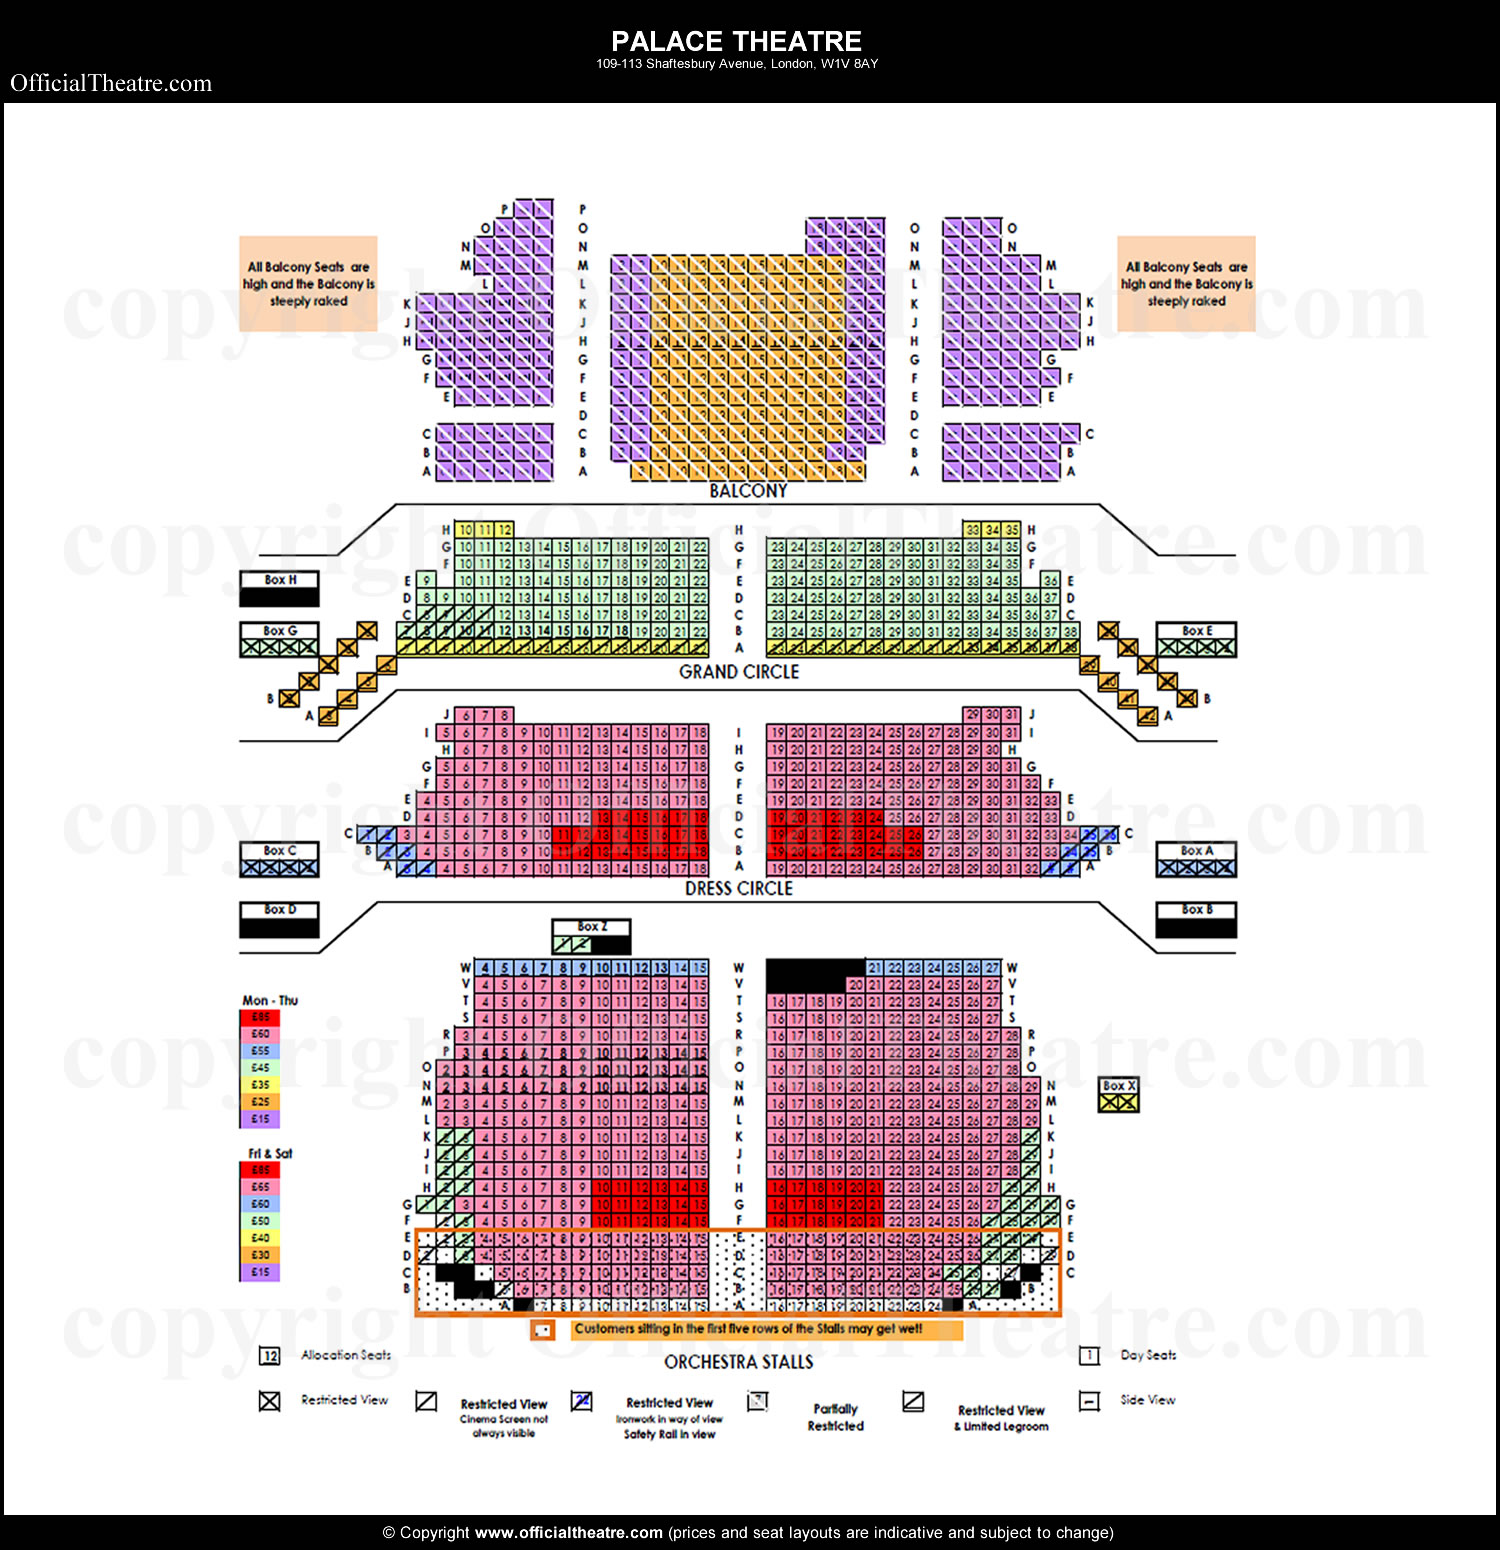 Palace theatre london seat map and prices for harry potter and the